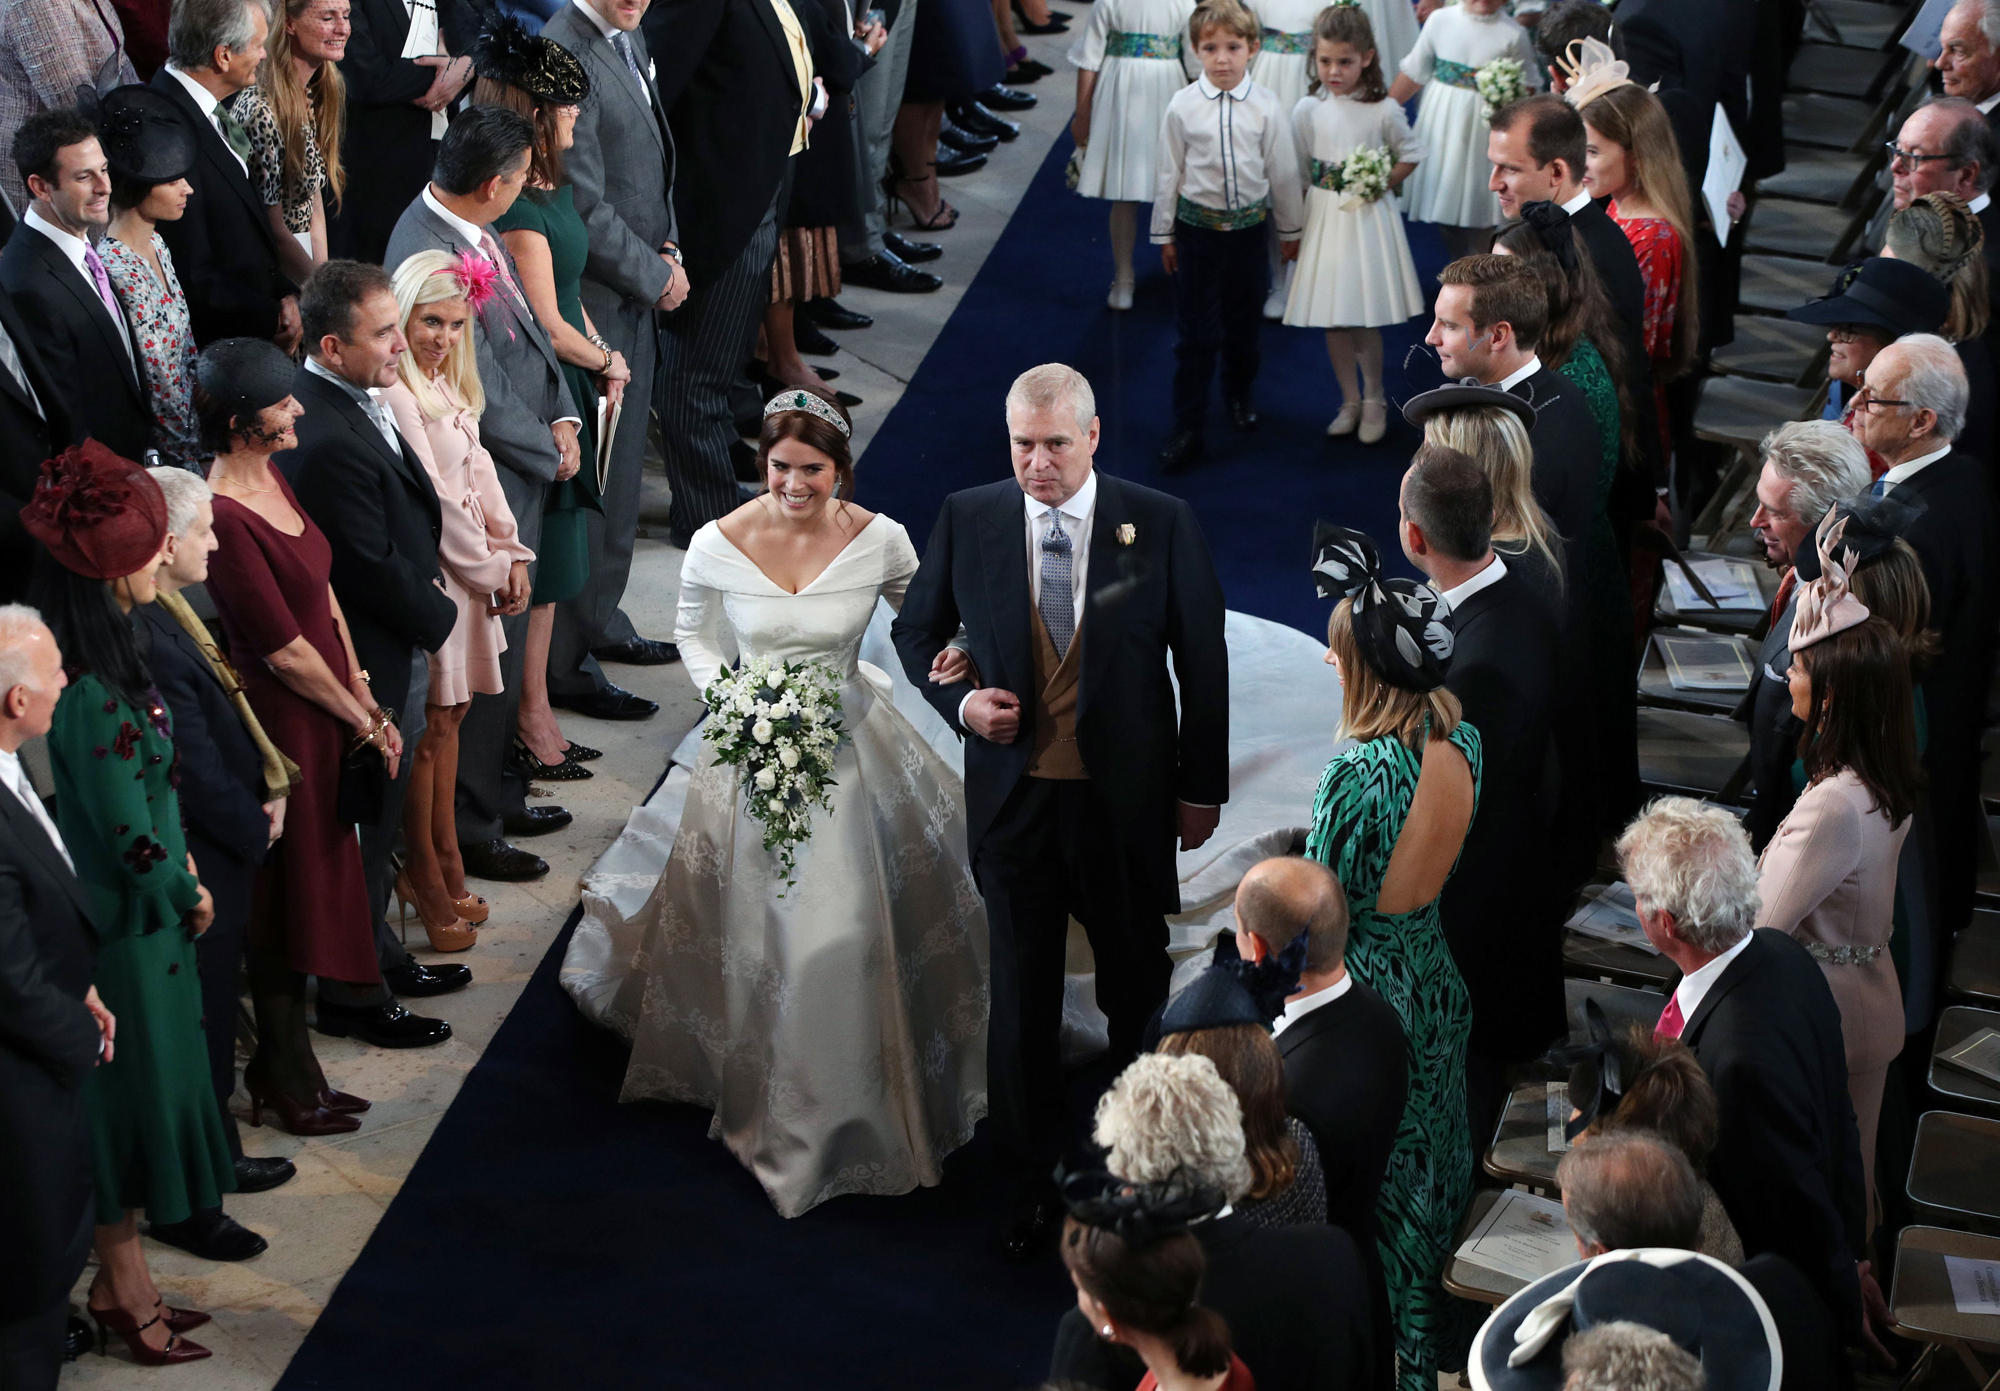 Prince George and Princess Charlotte Are Bridal Party Pros at Princess Eugenie's Wedding! princess-eugenie-8-2000